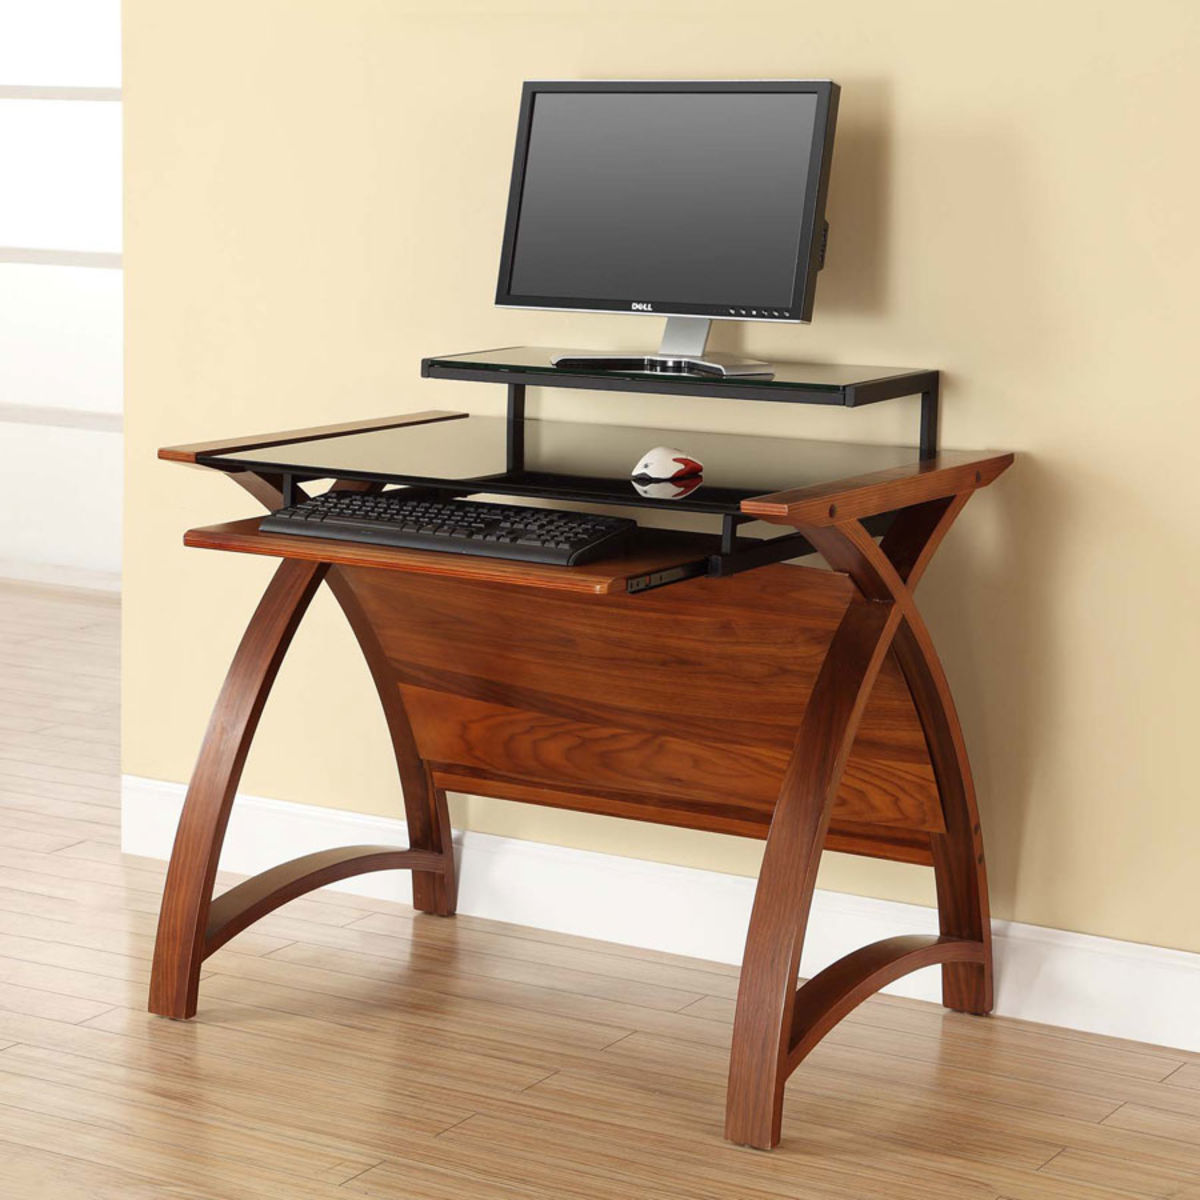 Curve Home Office Walnut Desk (90cm) Was £325.00 Now £269